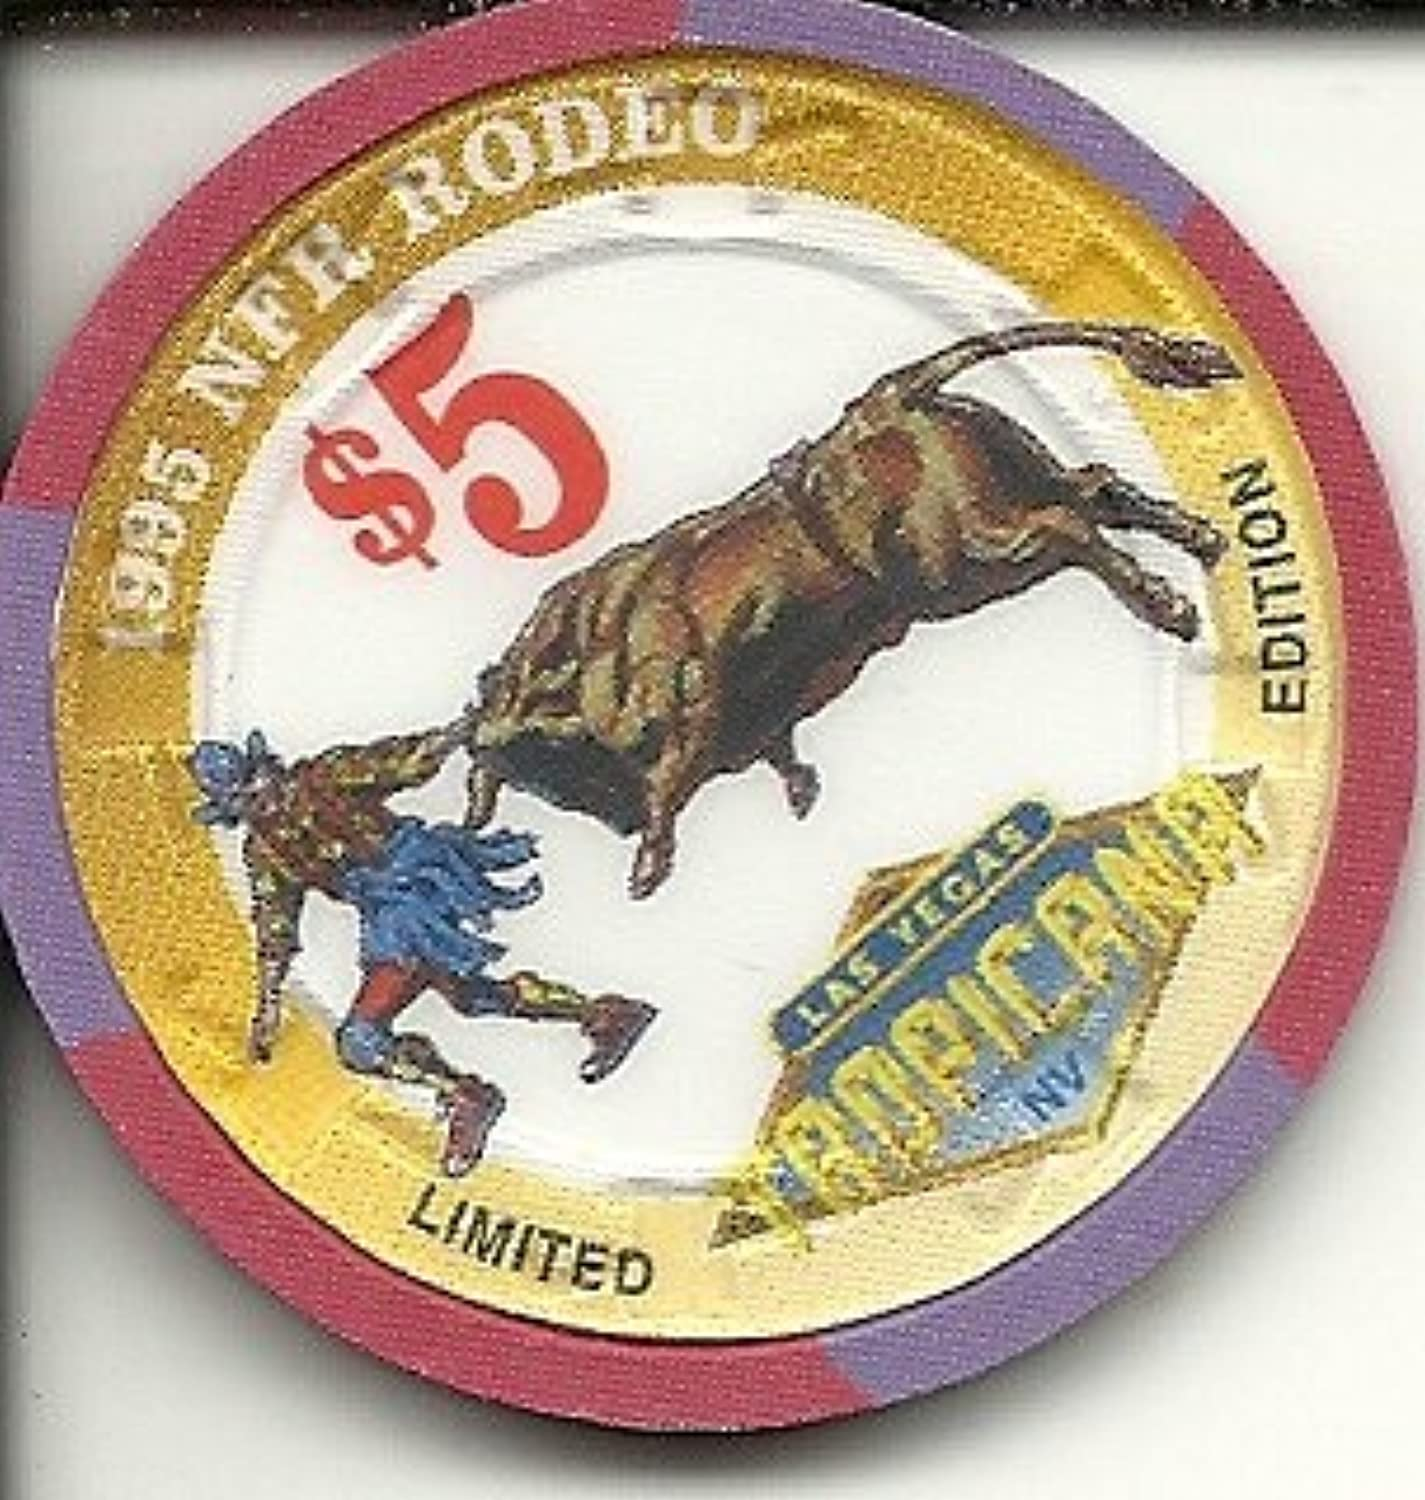 $ 5 Tropicana 1995 NFRバックルラスベガスカジノチップLimited Edition National Finals Rodeo